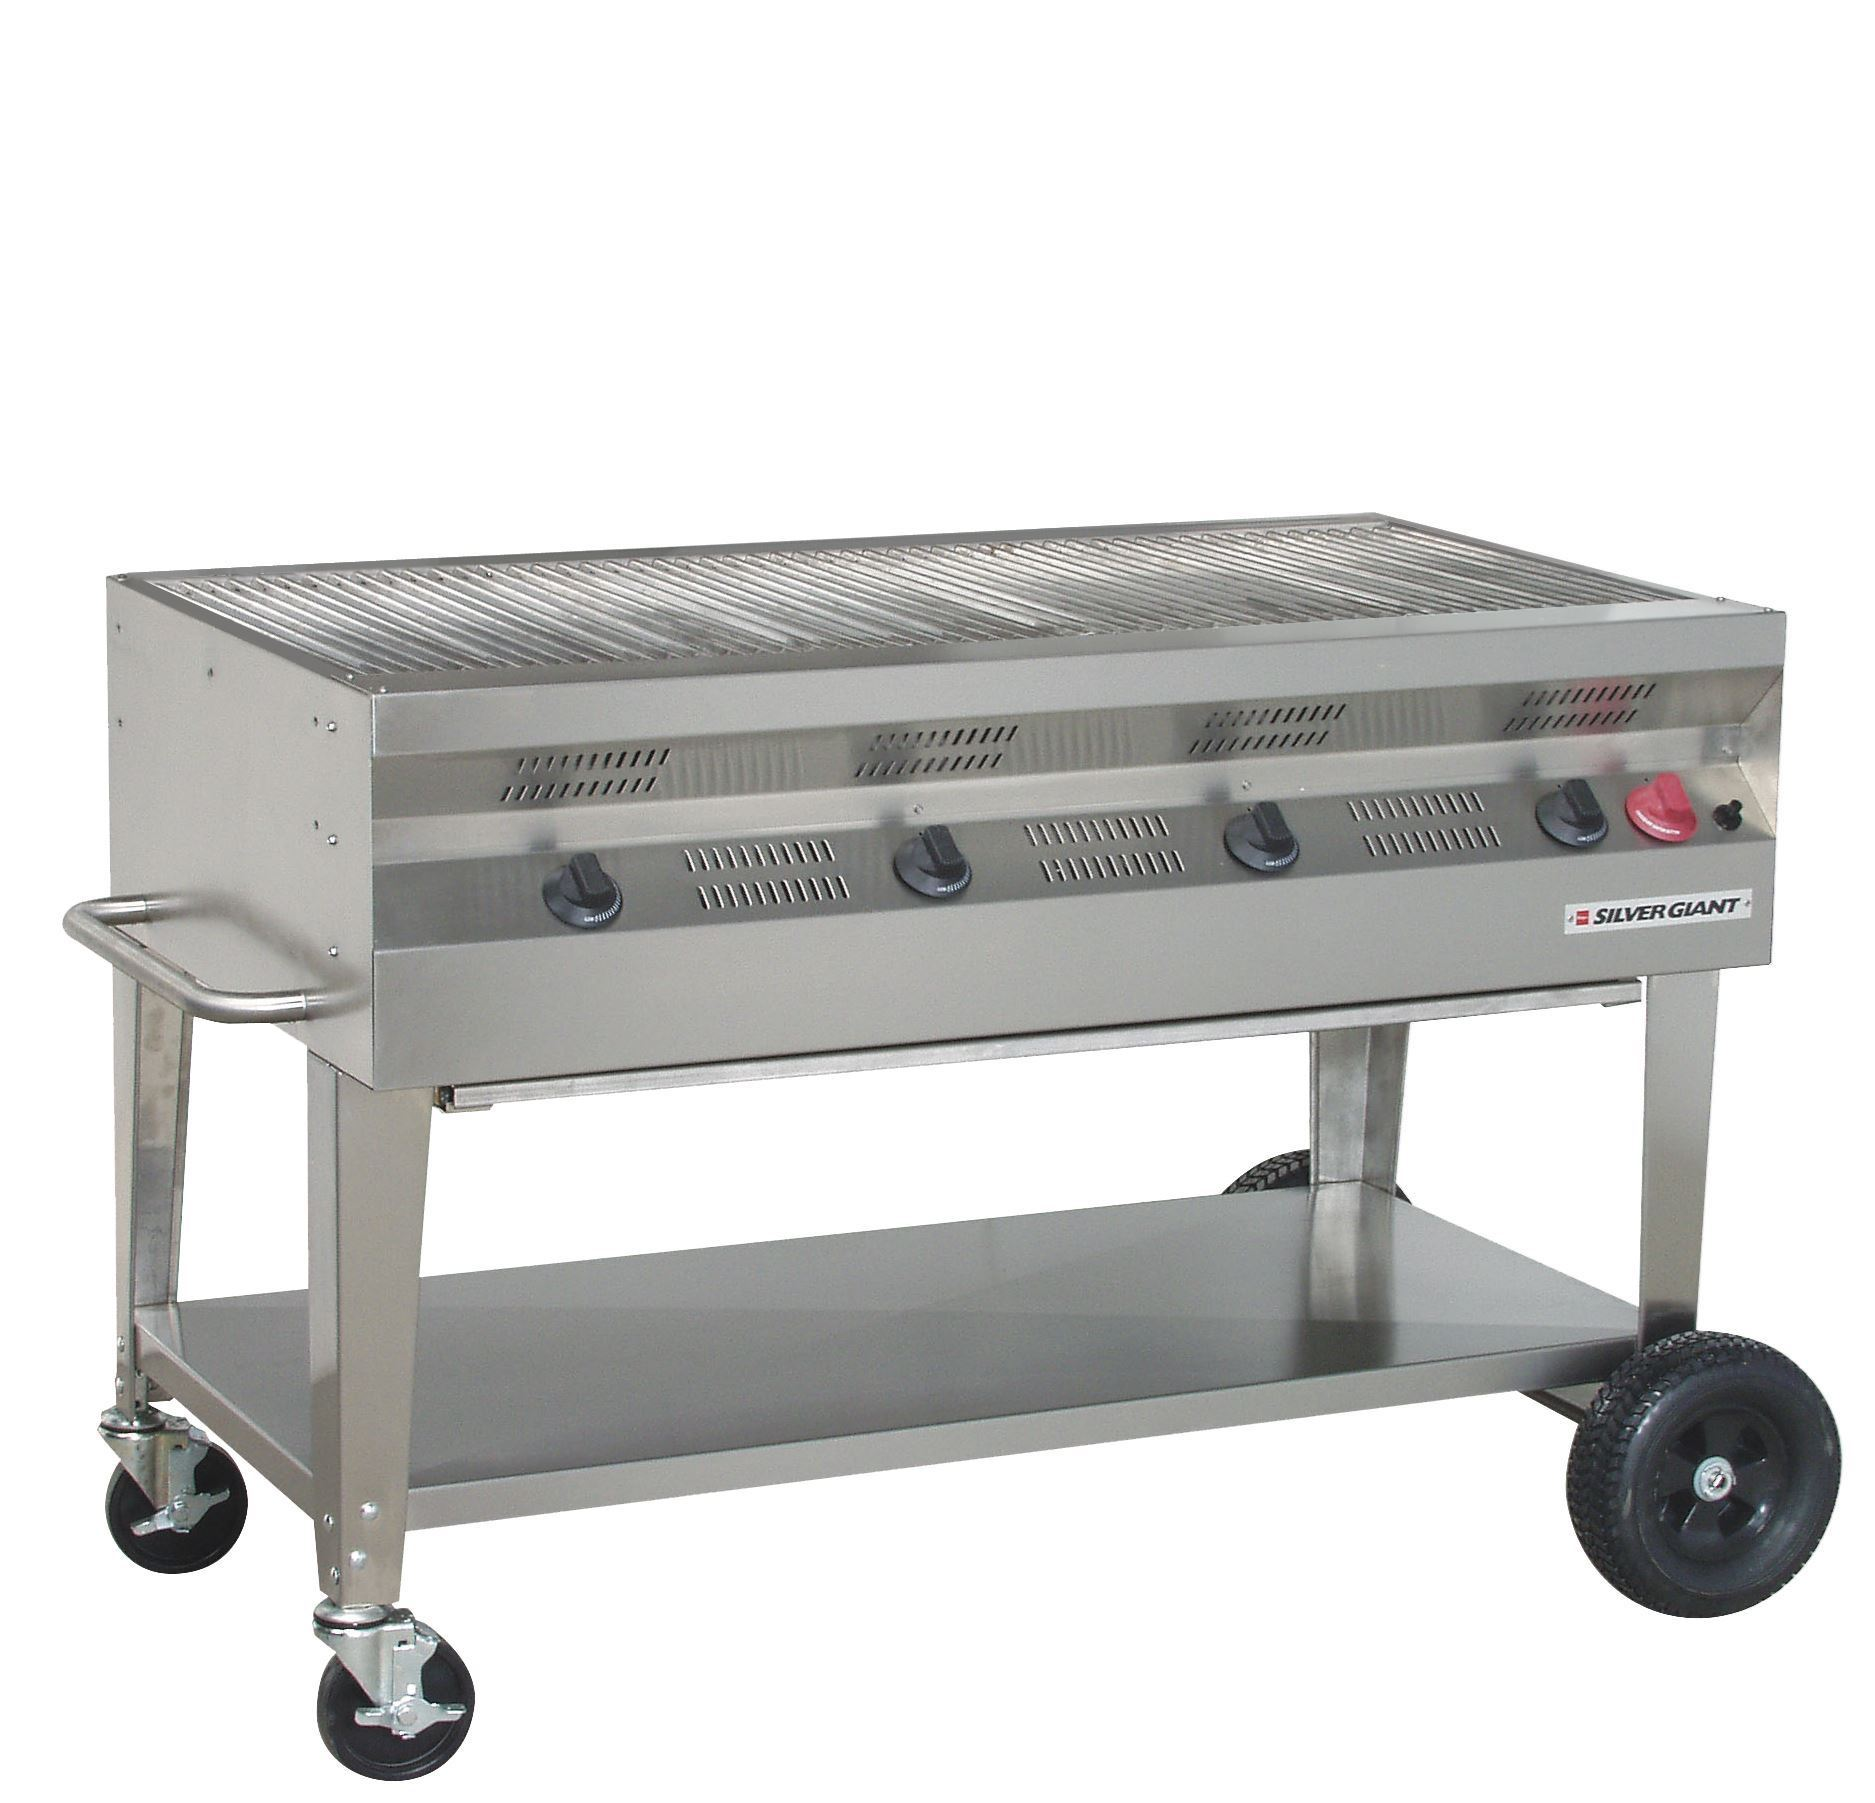 Silver giant quot commercial stainless steel barbaque grill